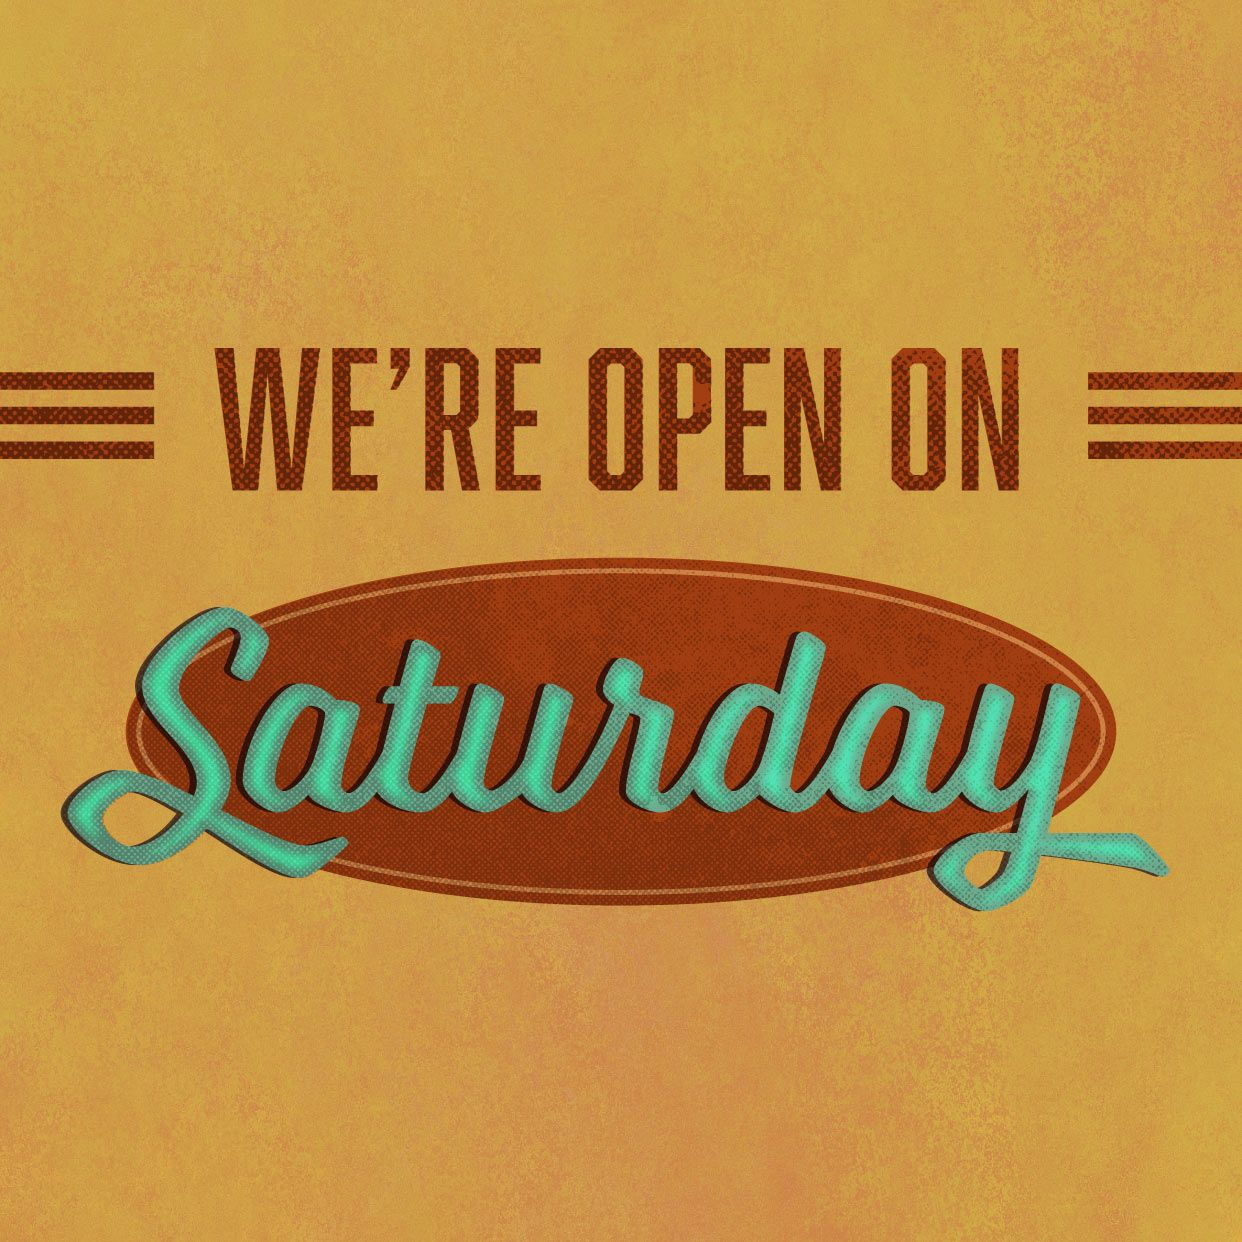 Busy During The Week Don T Worry We Re Open On Saturday Invisalign Dental Dentistry